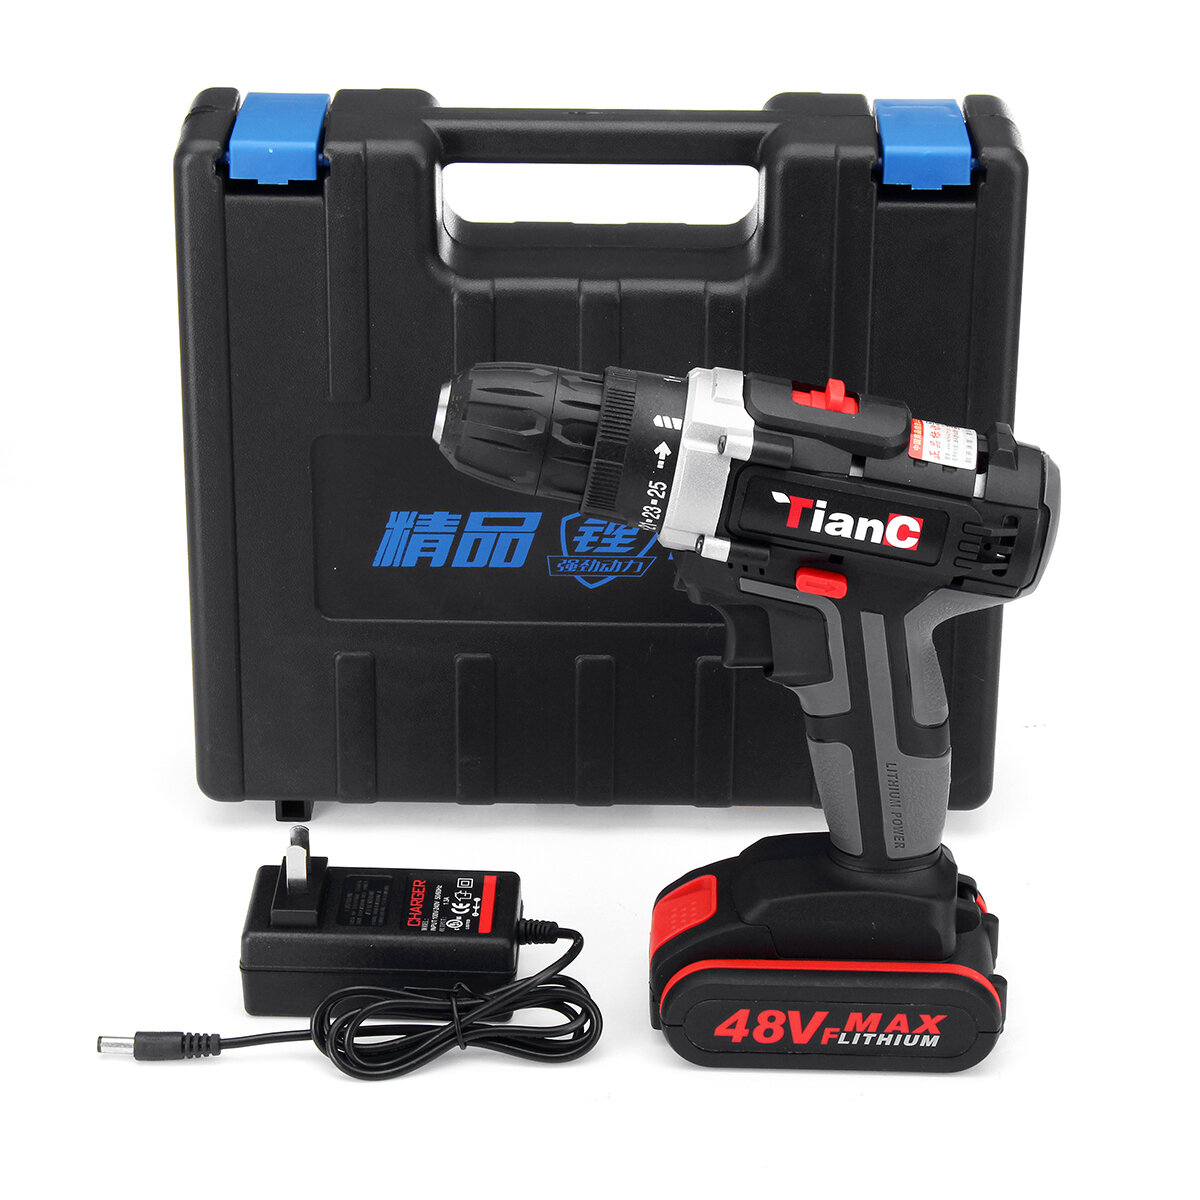 Minleaf ML-ED1 48VF Cordless Electric Impact Drill Rechargeable Drill Screwdriver W/ 1 or 2 Li-ion Battery - 2